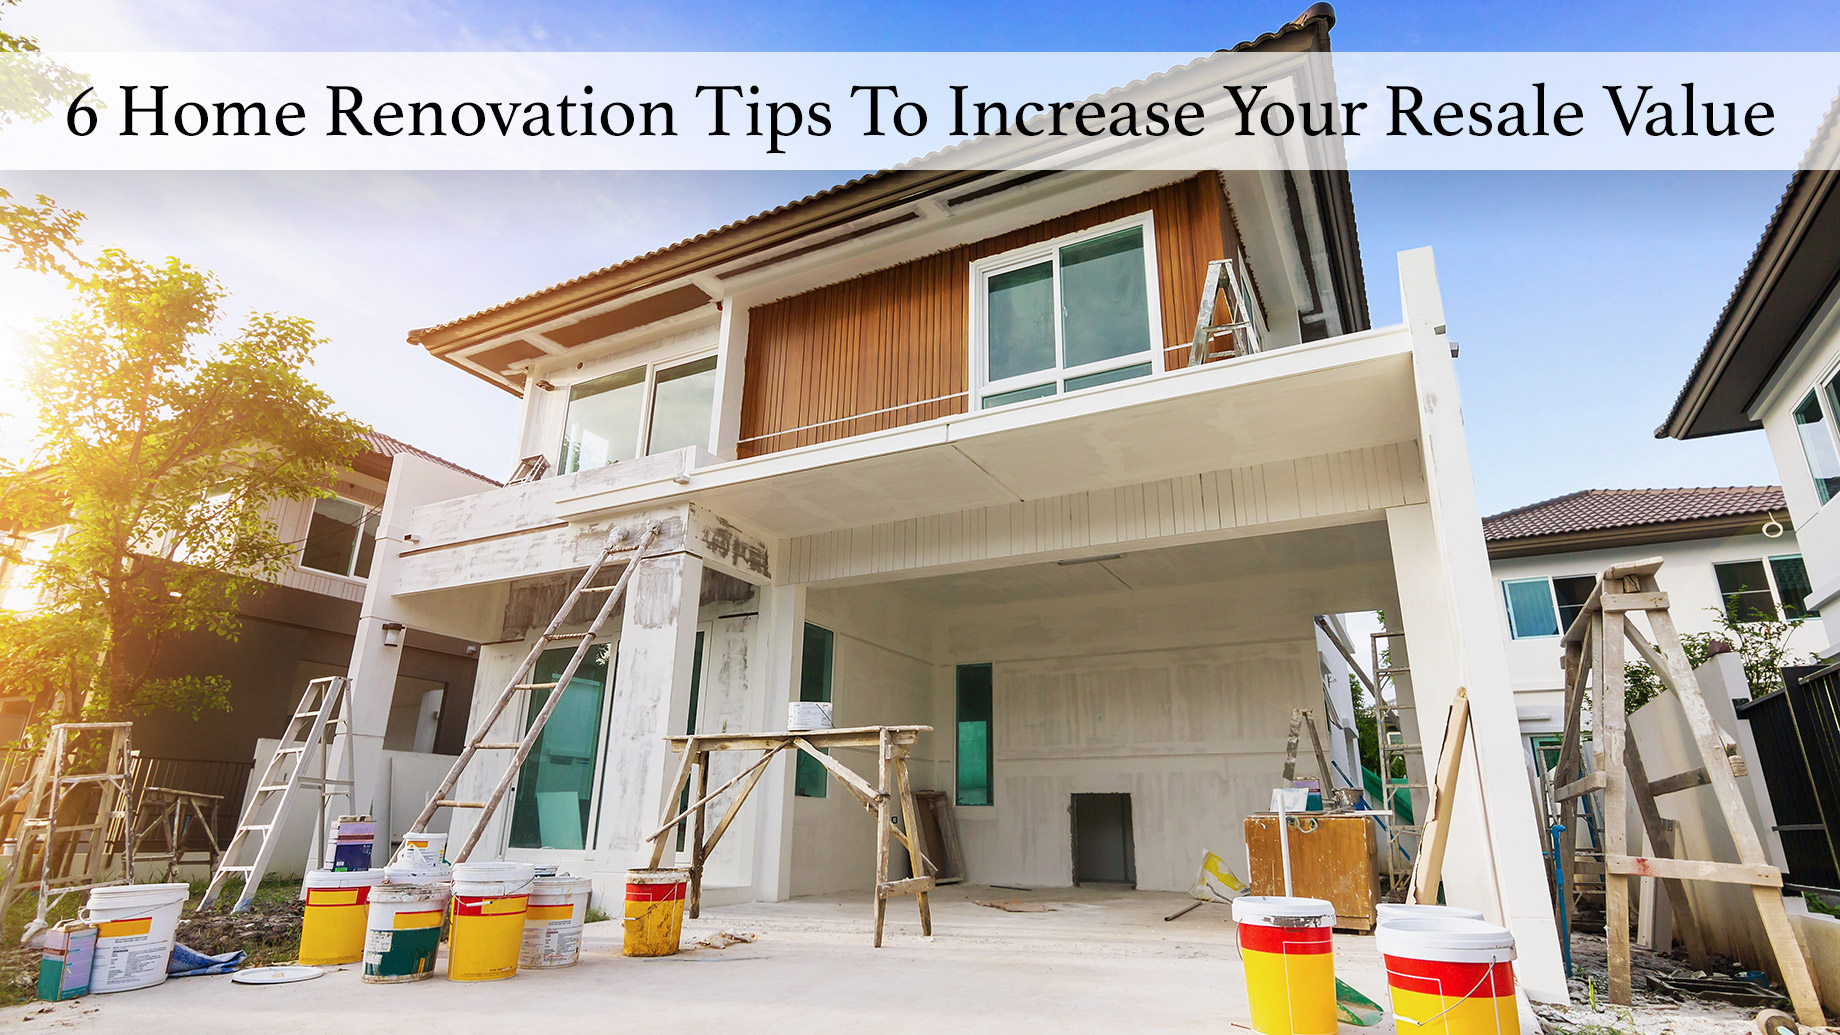 6 Home Renovation Tips To Increase Your Resale Value